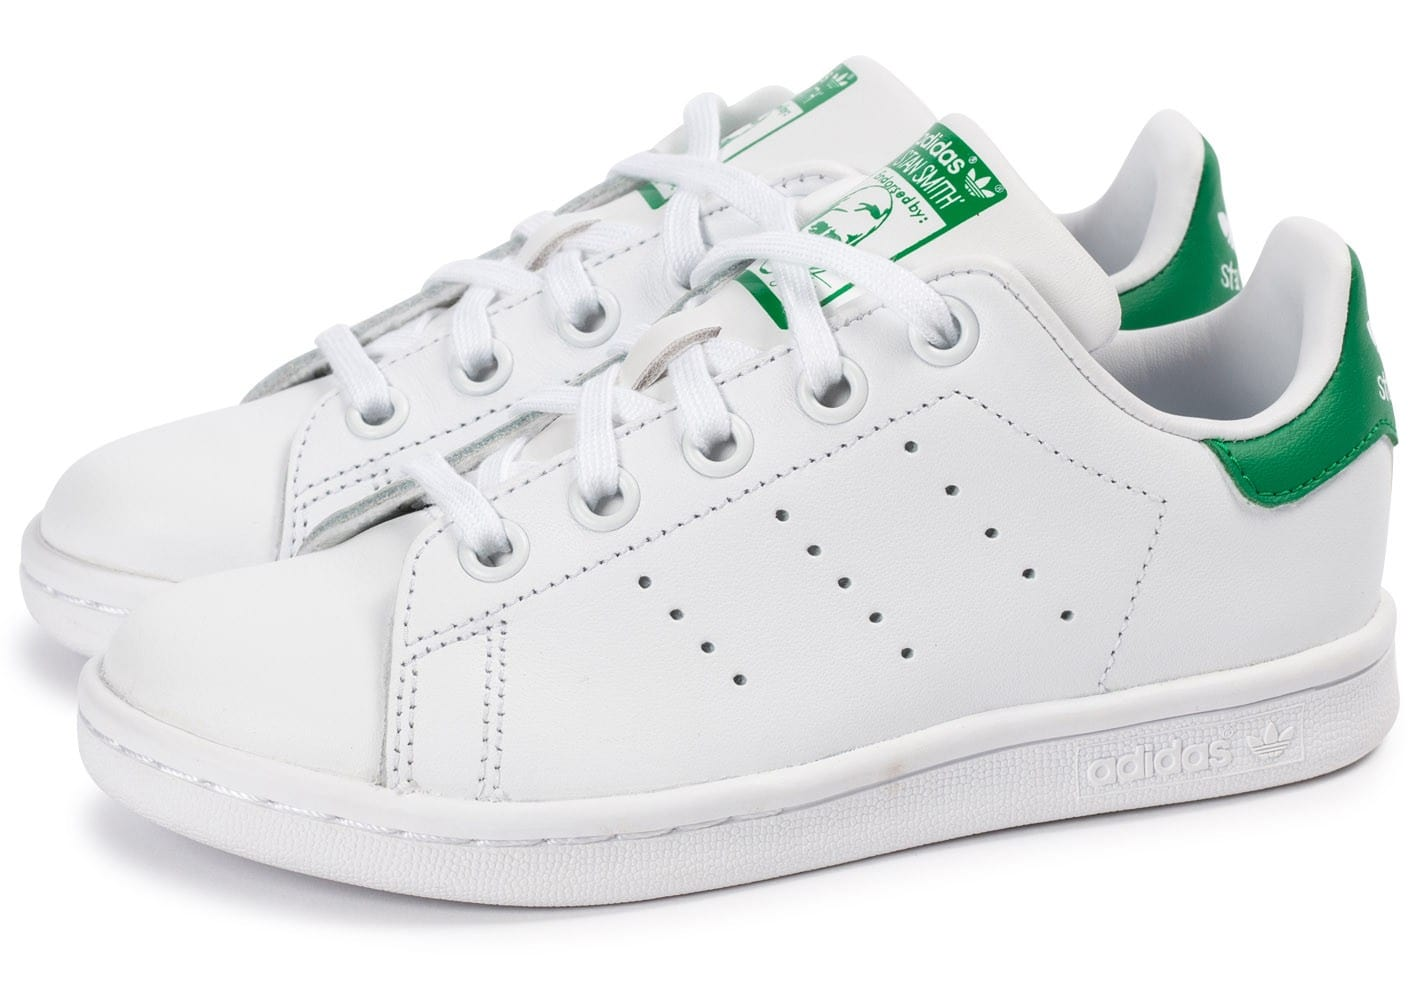 Stan smith soldes chausport